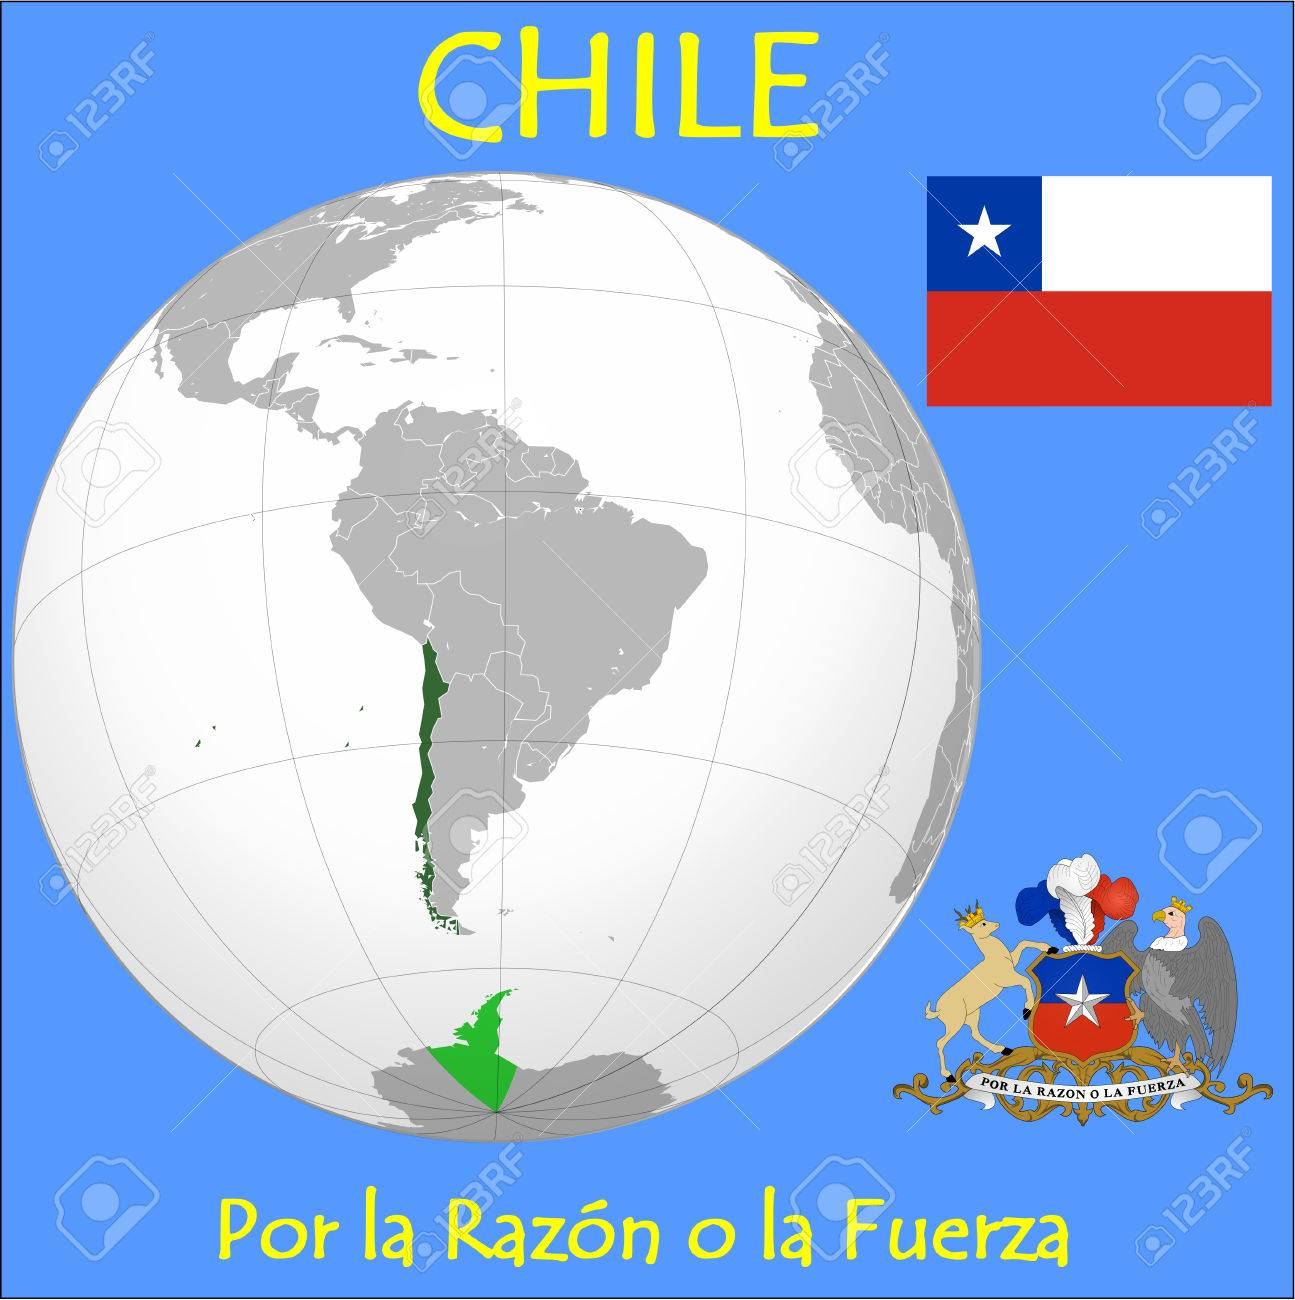 Chile Location Emblem Motto Royalty Free Cliparts Vectors And - Chile location